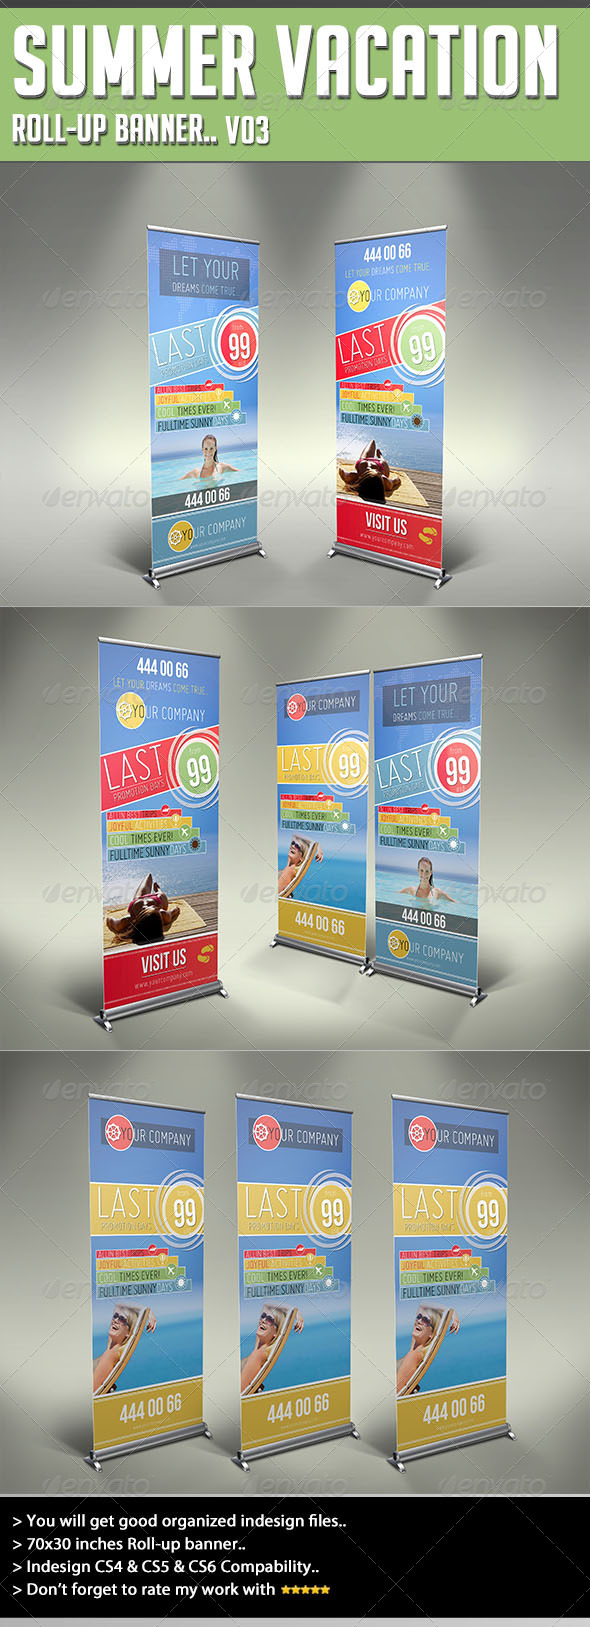 GraphicRiver Roll-up Banner Summer Vacation 4605911